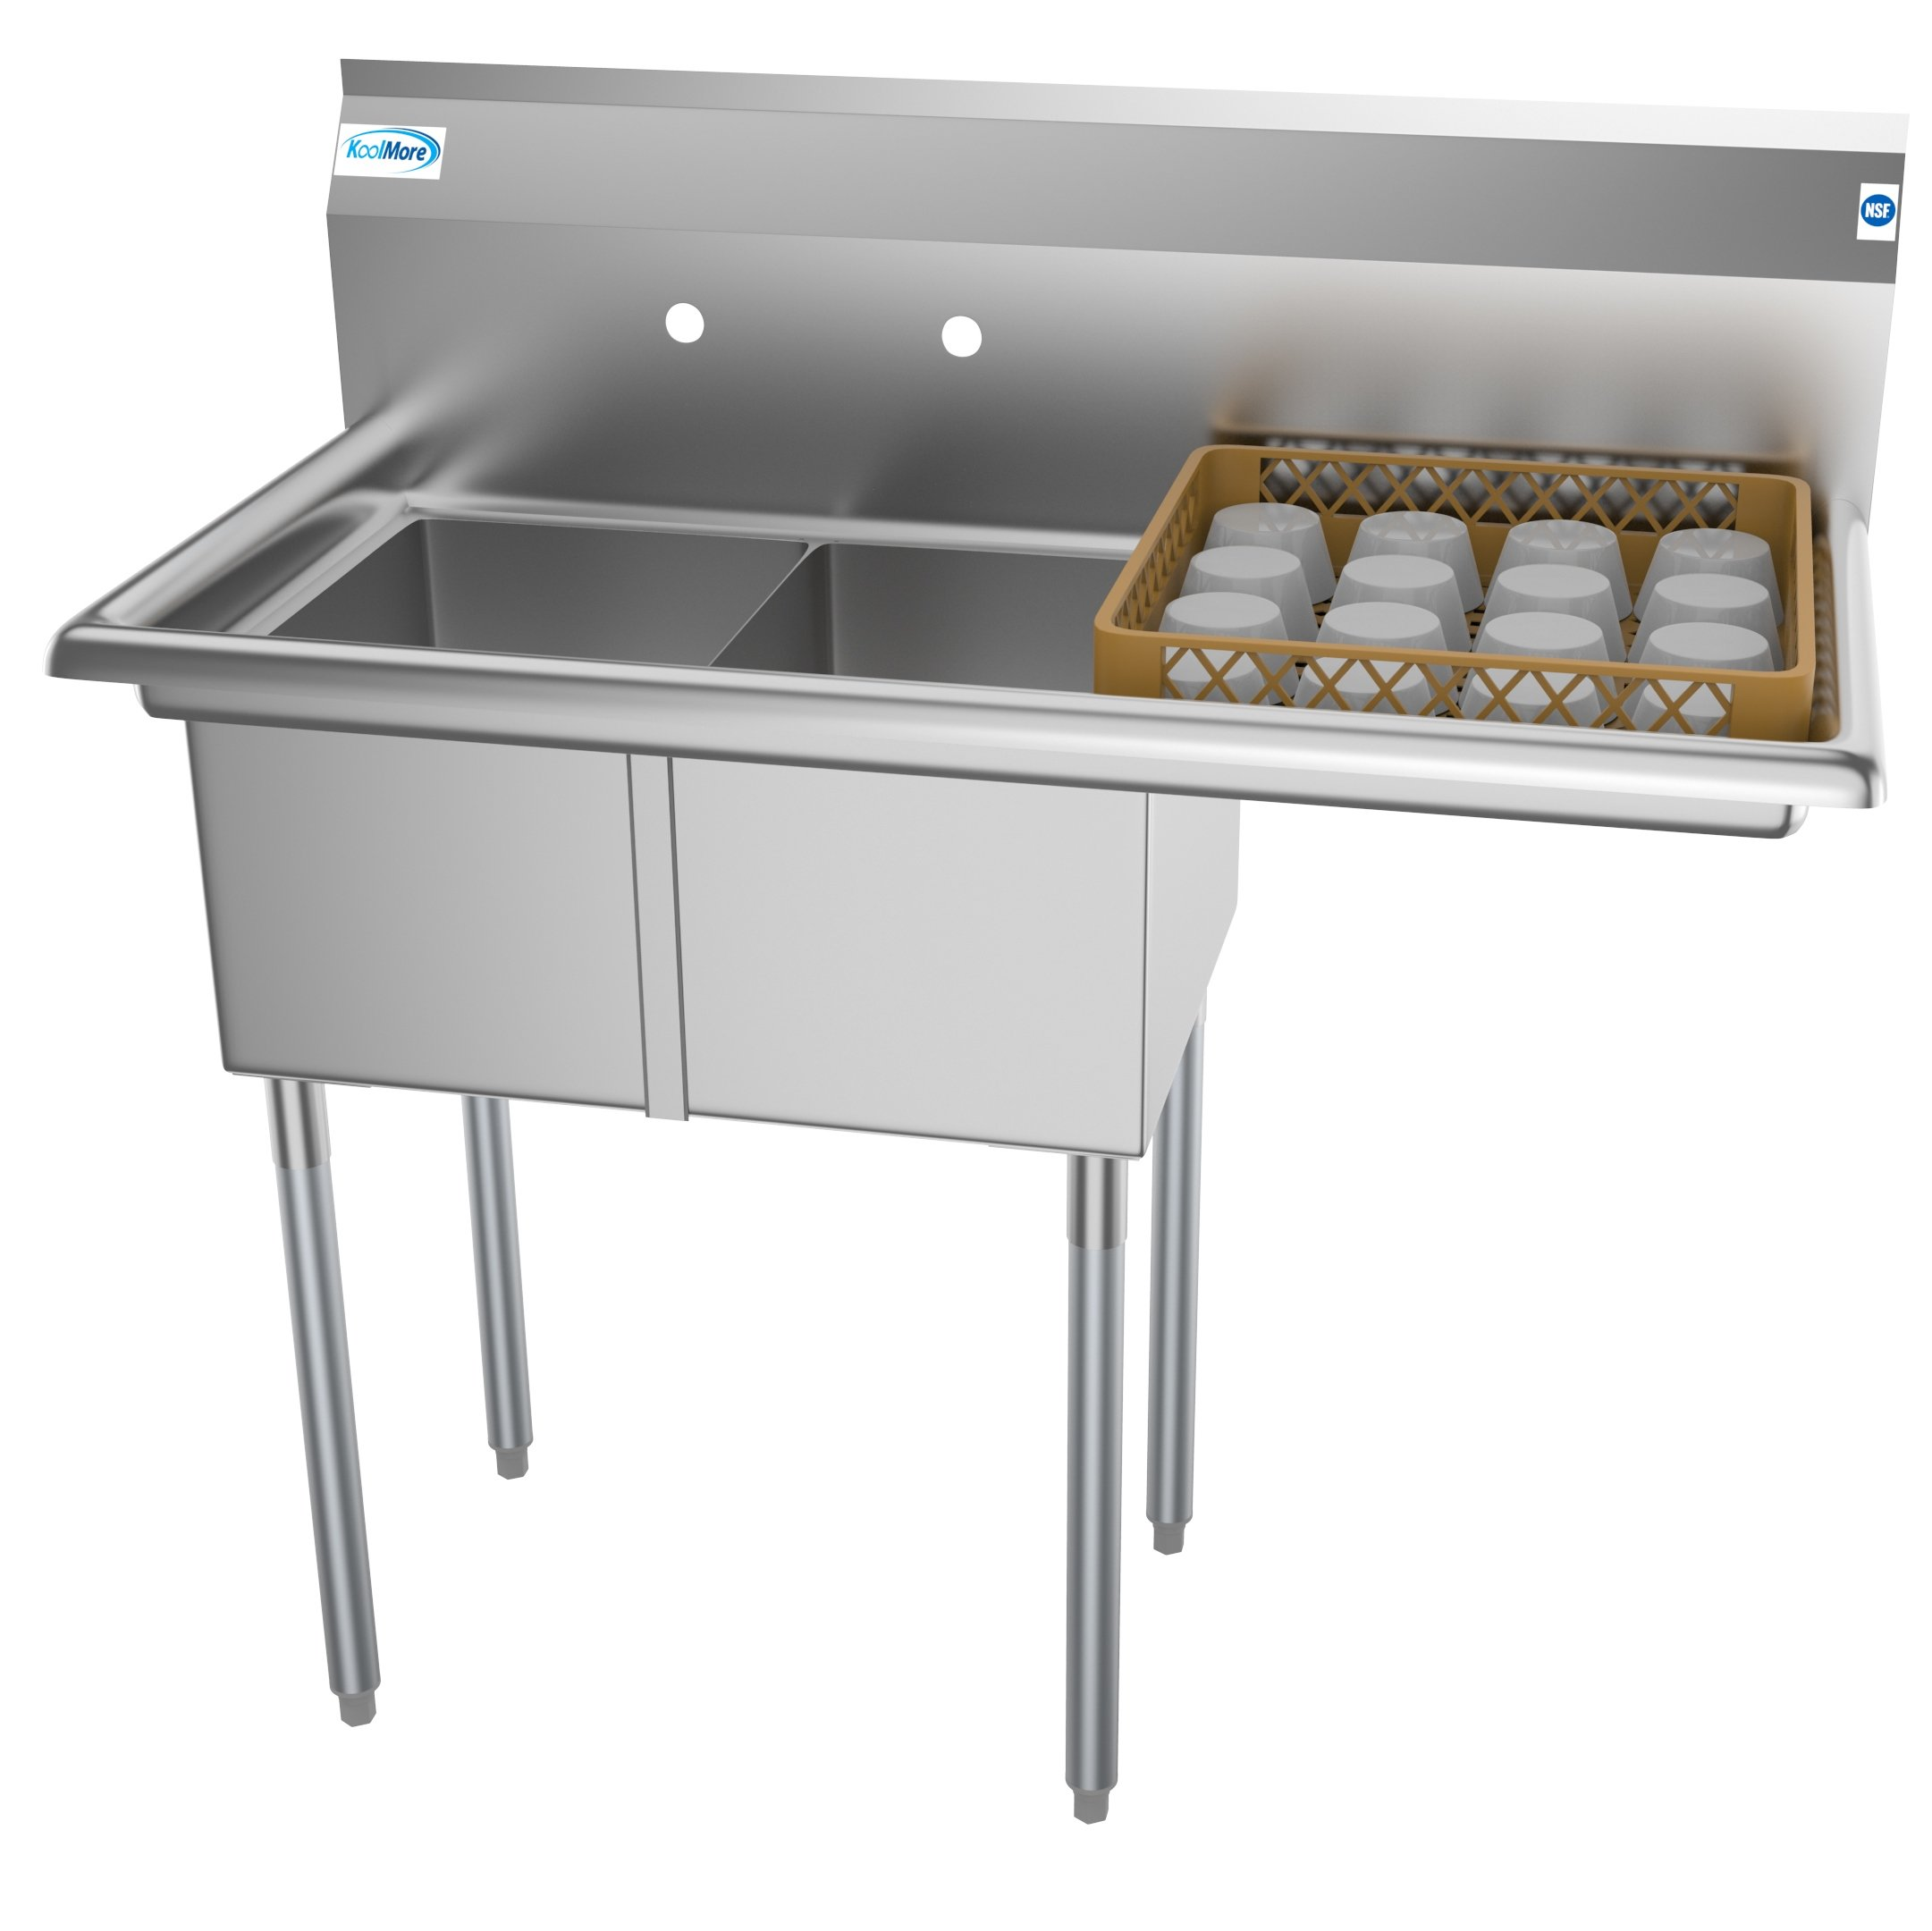 2 compartment 43 stainless steel commercial kitchen prep utility sink with drainboard bowl size 12 x 16 x 10